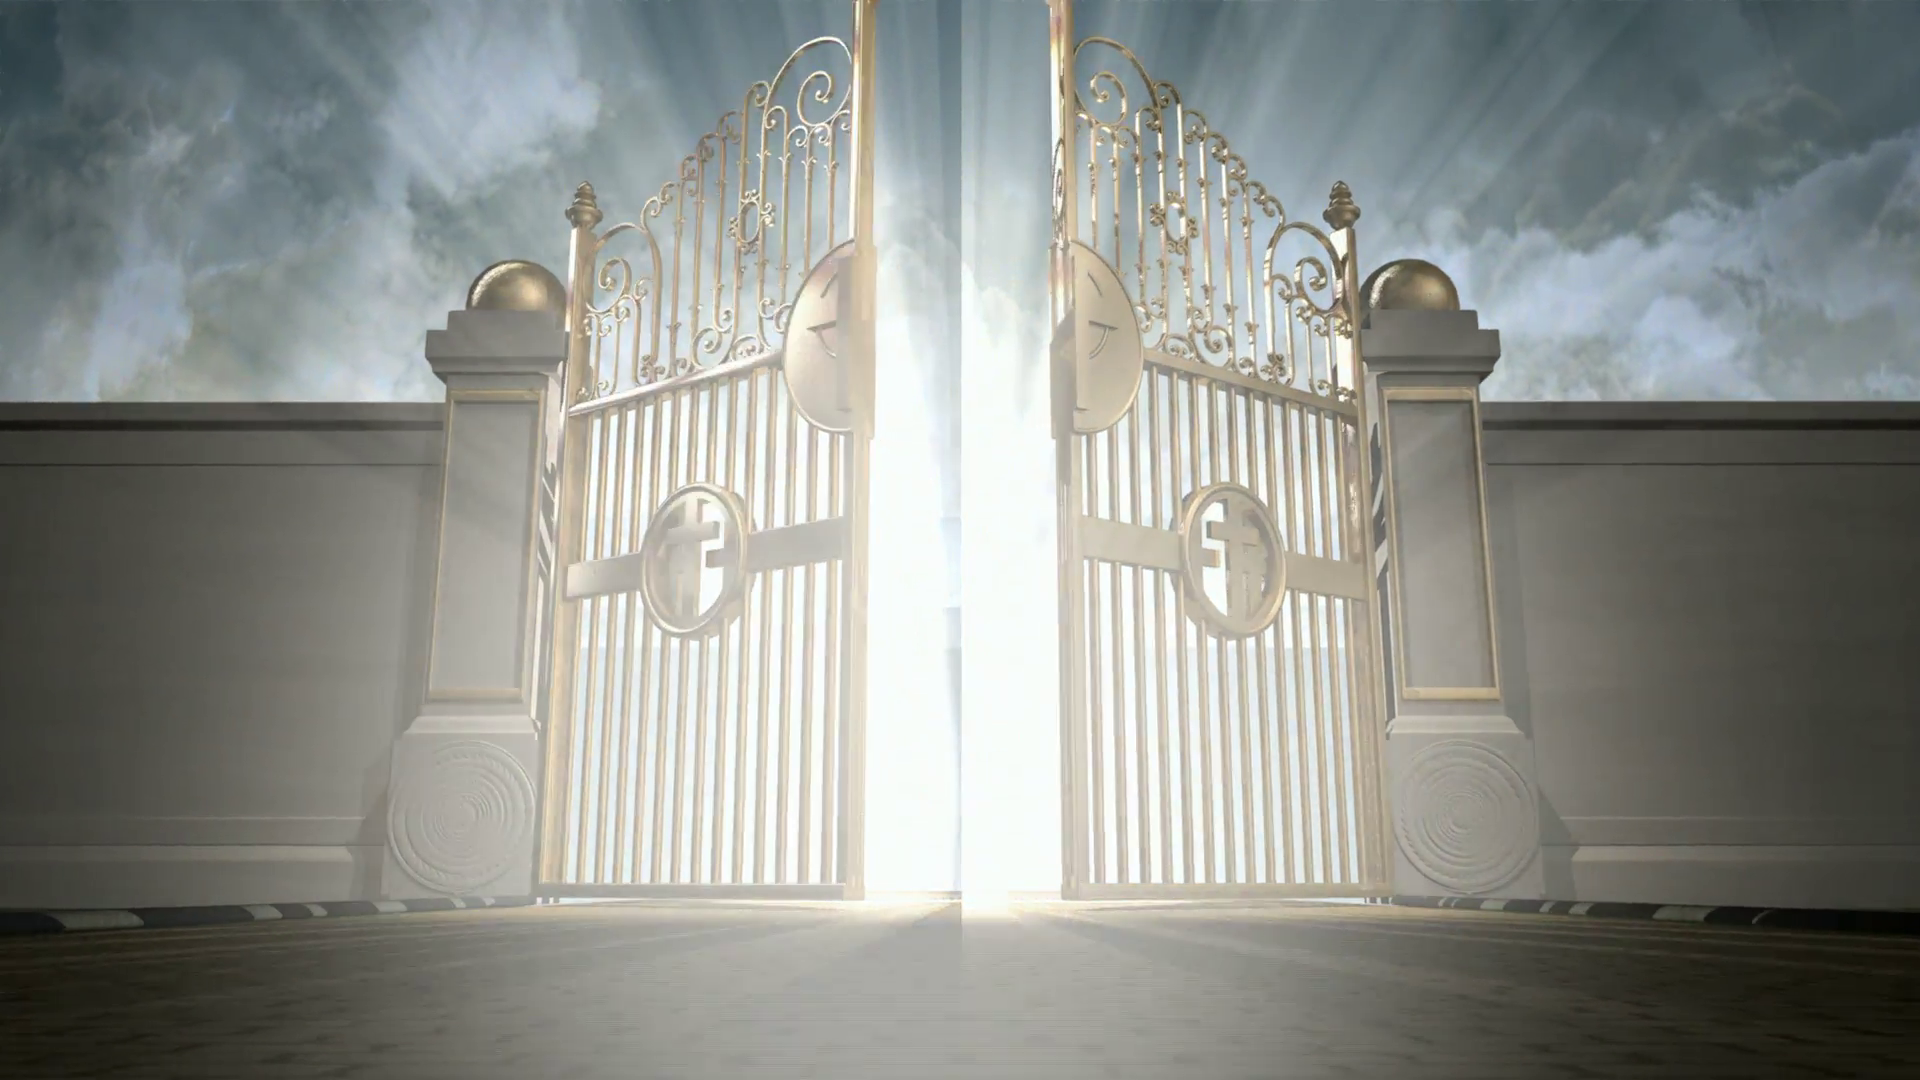 Heavens golden gates opening to an ethereal light on a cloudy background  Motion Background.